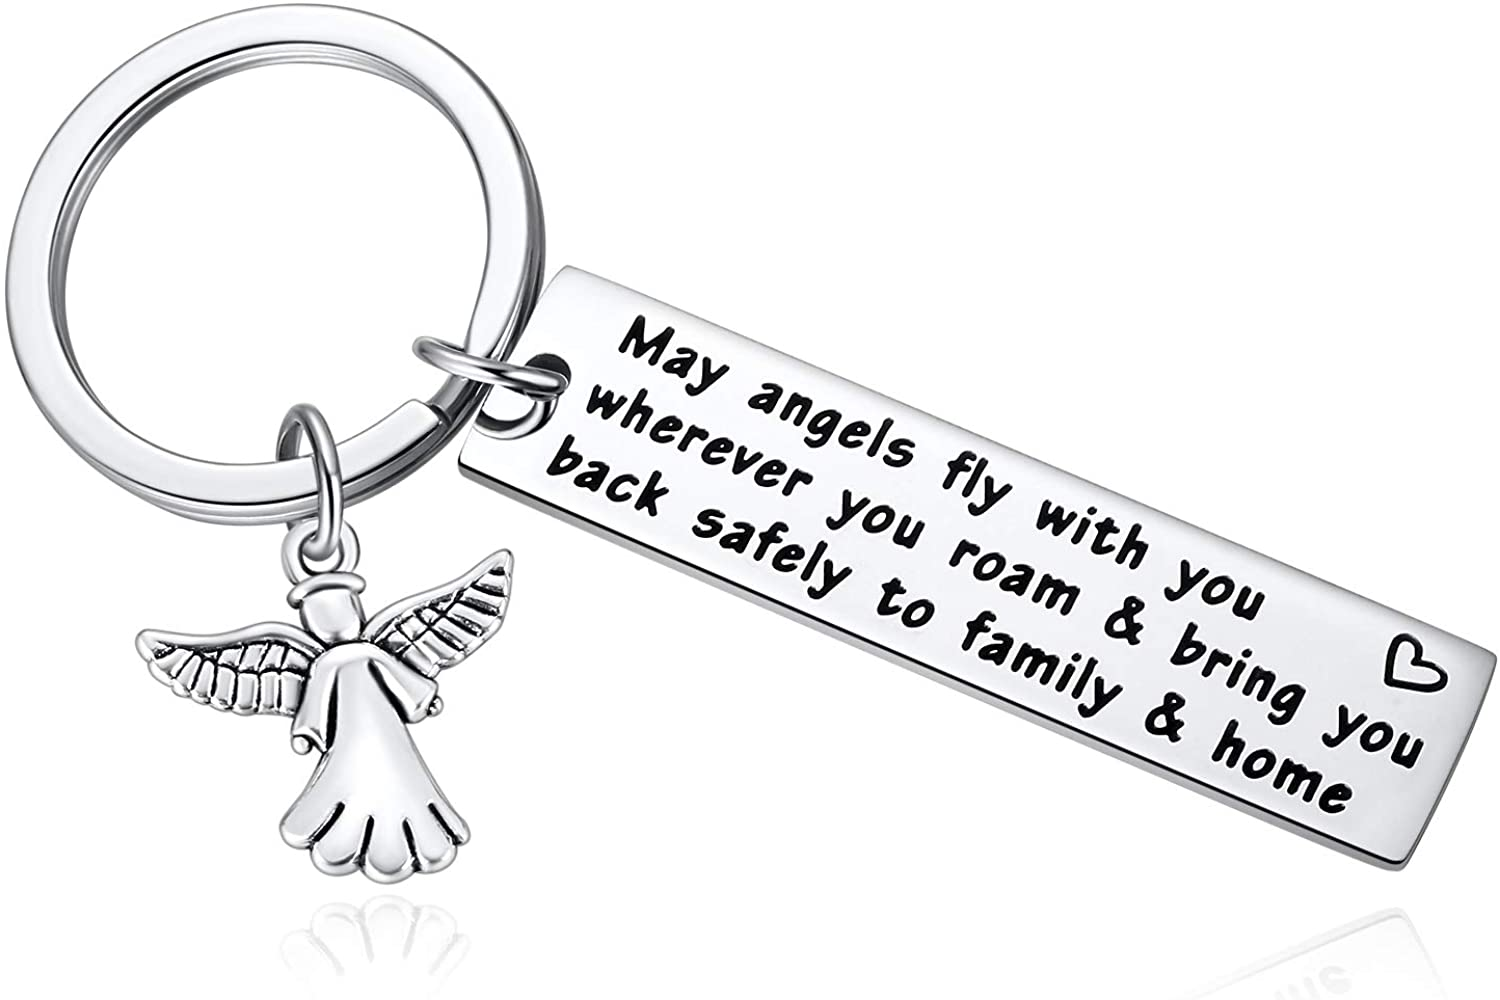 World Traveller Key Chain Gift for Flight Attendant, Pilot, Astronauts, Boyfriend, Girlfriend - May Angels Fly with You Wherever You Roam